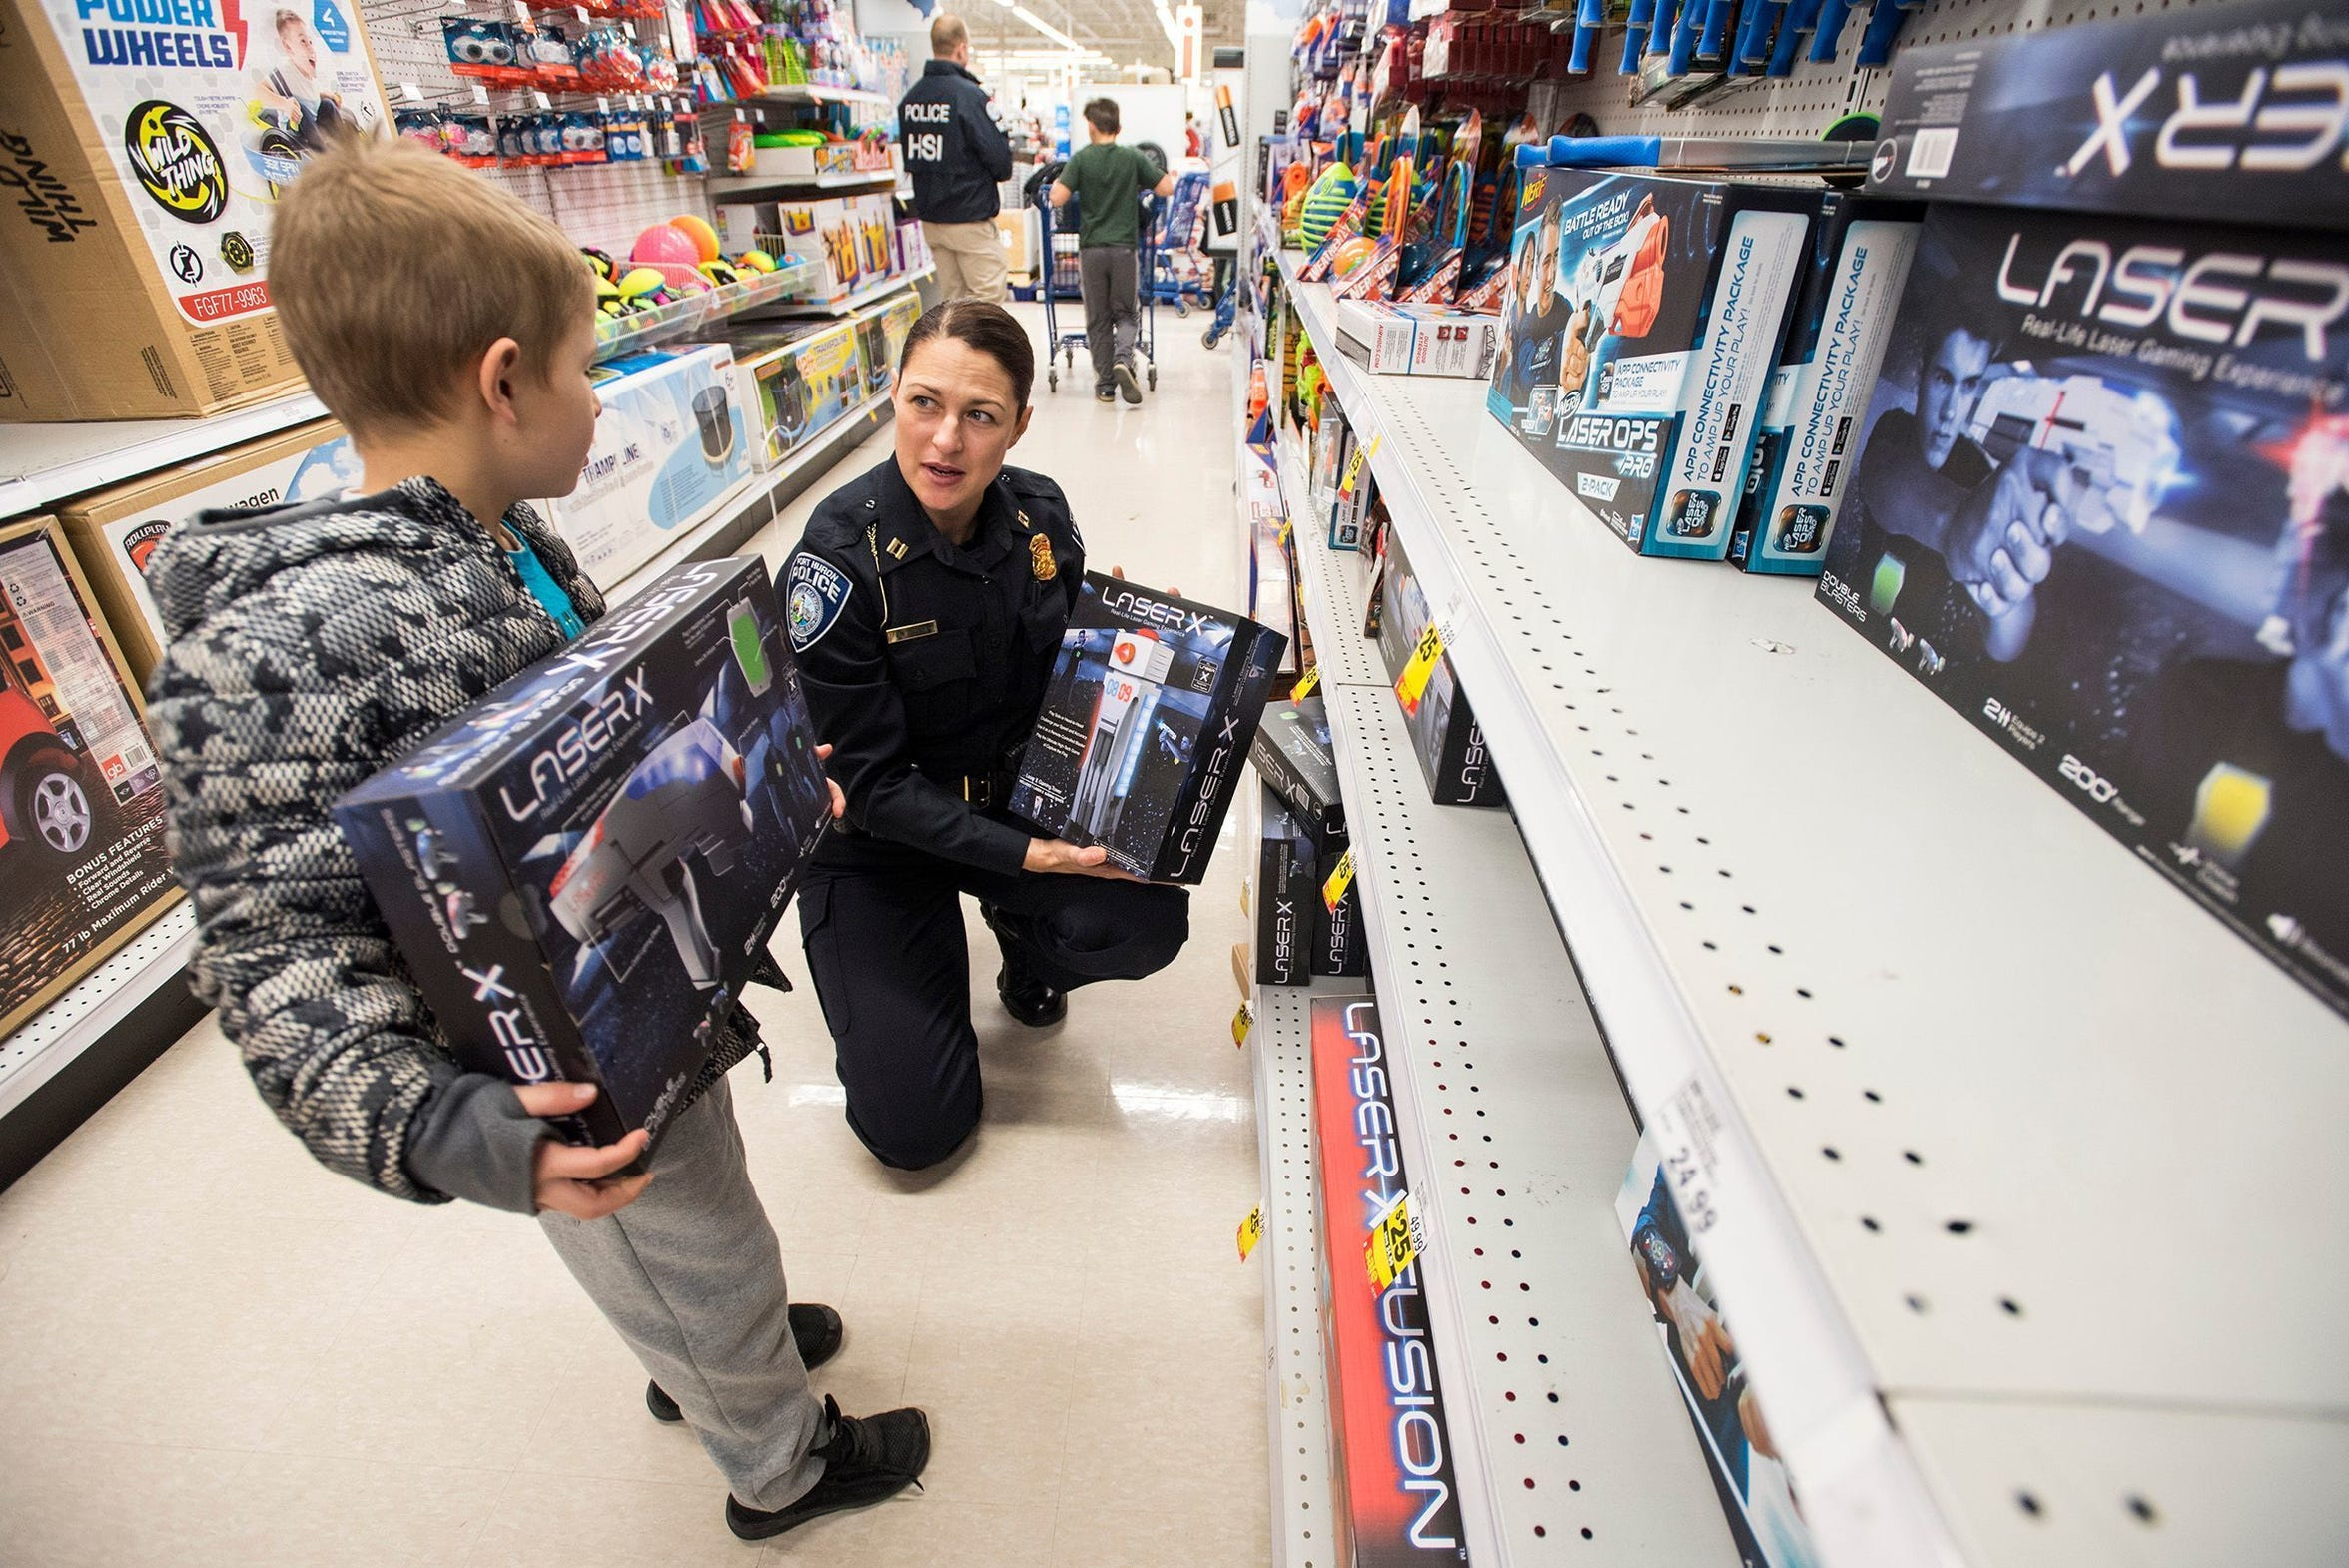 Port Huron Police Capt. Marcy Kuehn, right, helps Adrian Villarreal, 8, shop for a laser gun game at Christmas with a Cop Tuesday, Dec. 11, 2018, at Meijer in Fort Gratiot. Kuehn was promoted to captain from lieutenant in 2018.